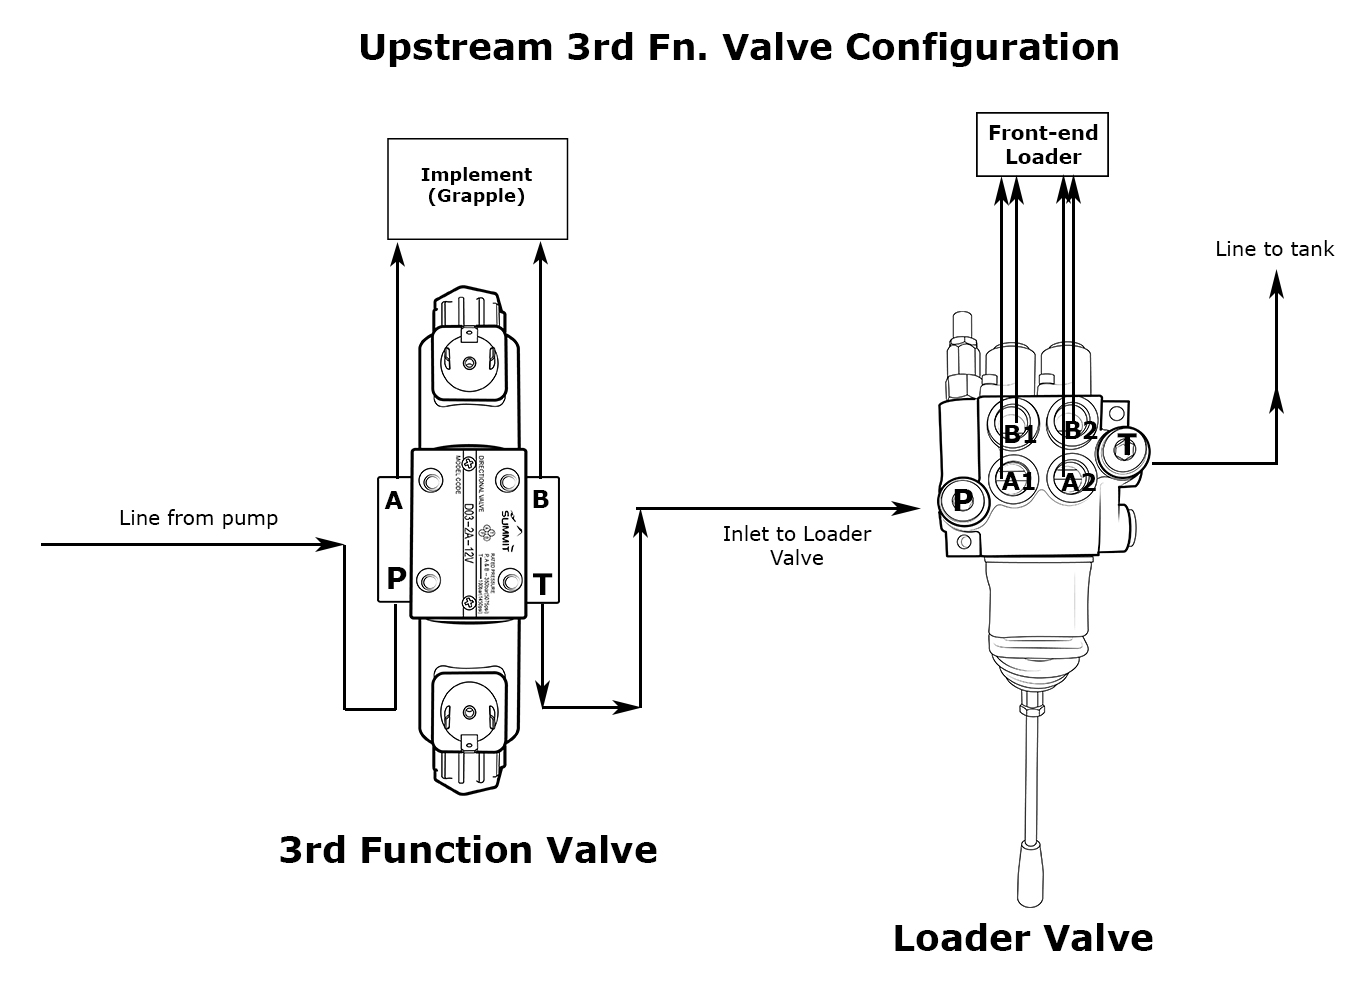 Upstream-3rd-Function-Valve-Figuration-without-Backhoe